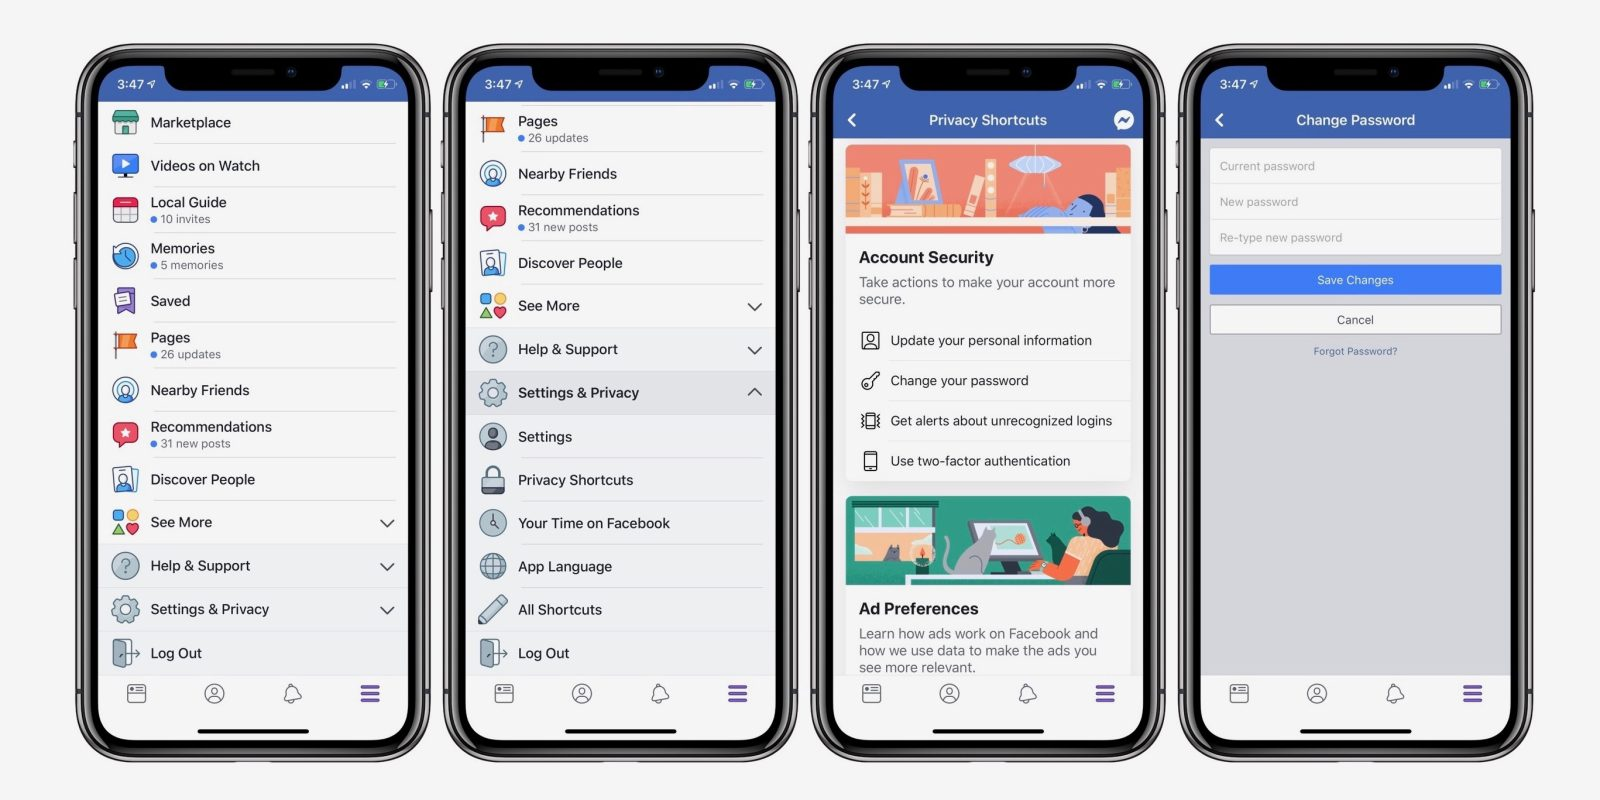 How to Change your iPhone Facebook Password